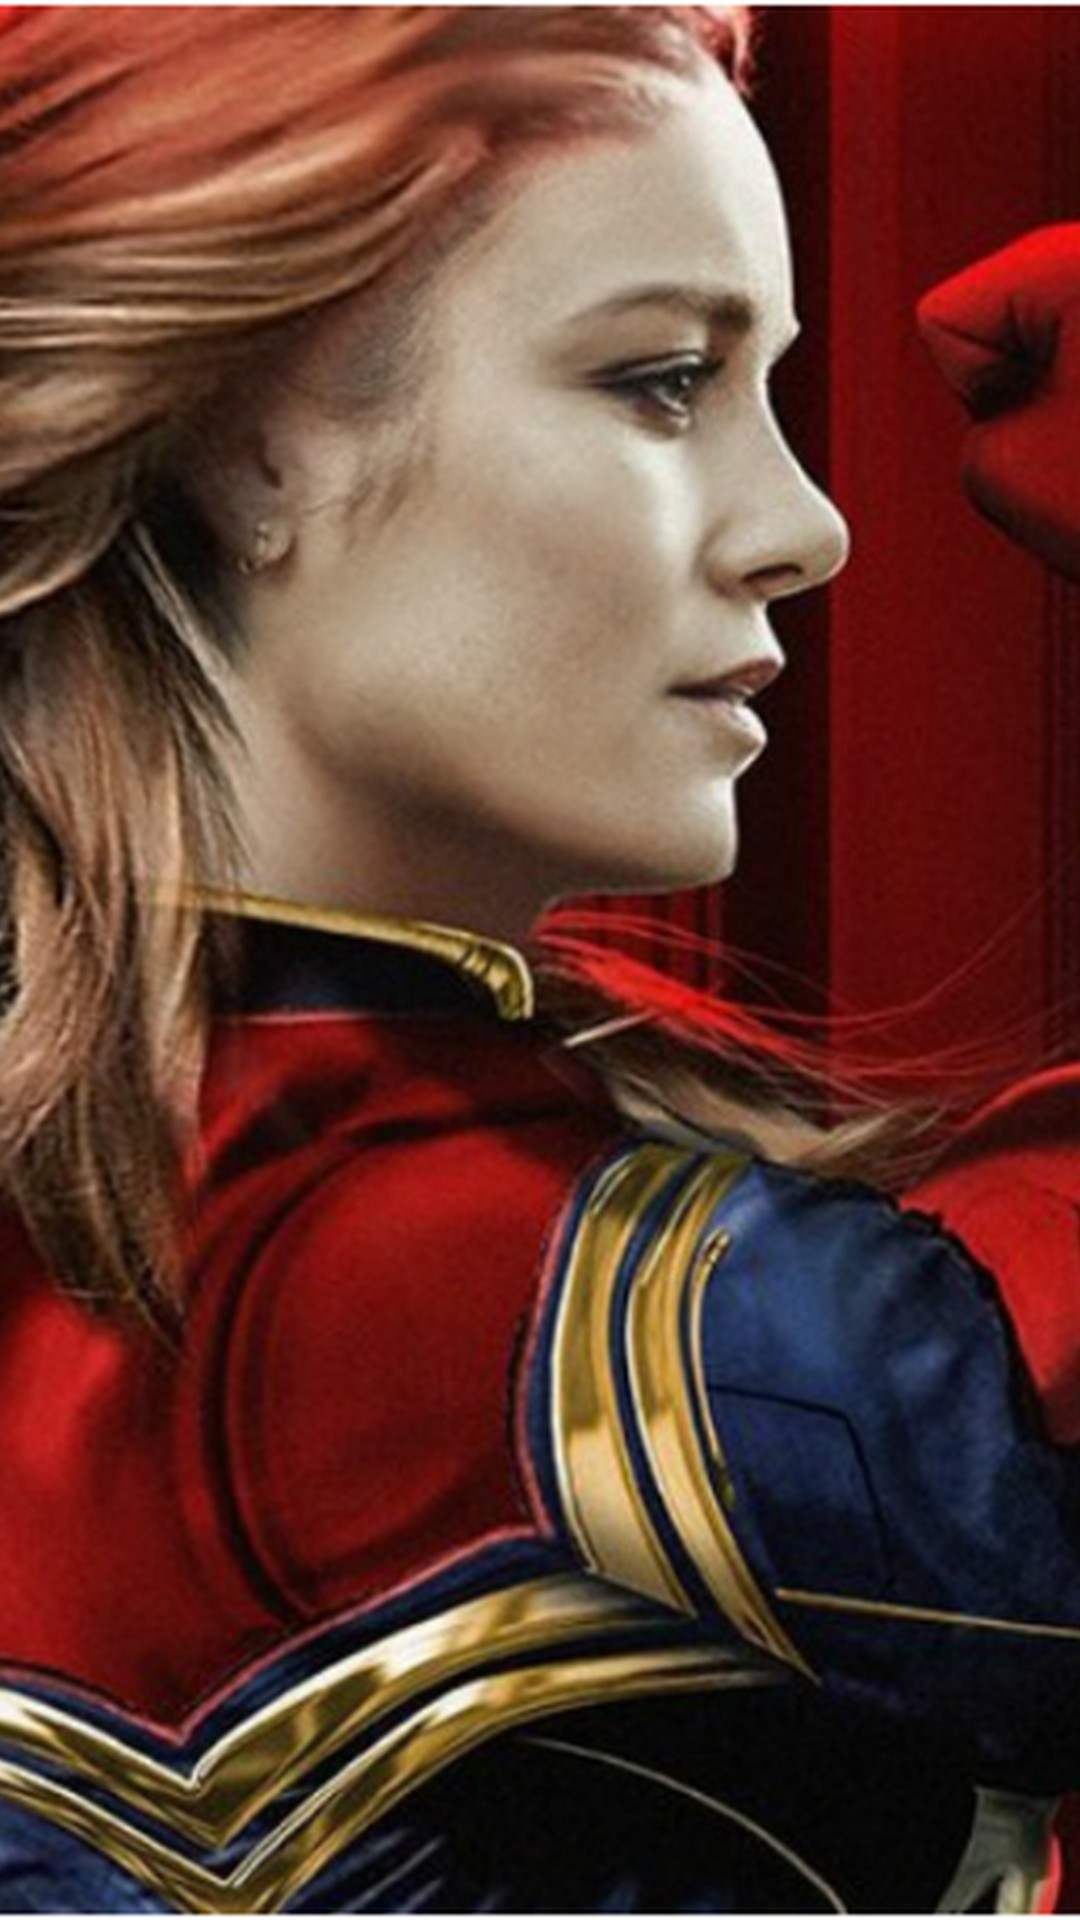 Wallpapers Phone Captain Marvel   2020 Android Wallpapers 1080x1920